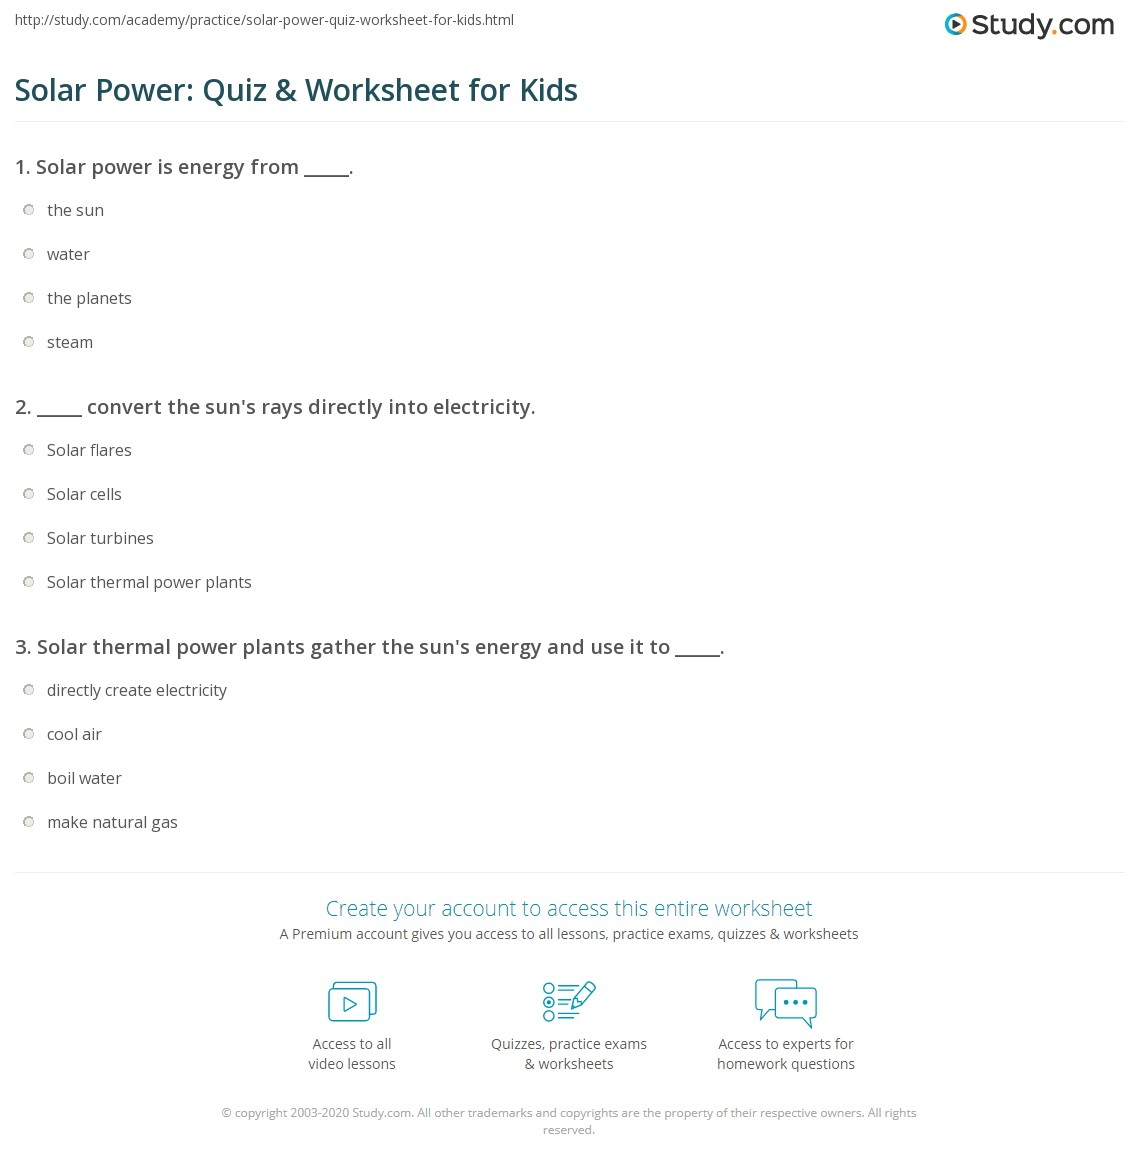 Solar Power: Quiz & Worksheet for Kids | Study.com